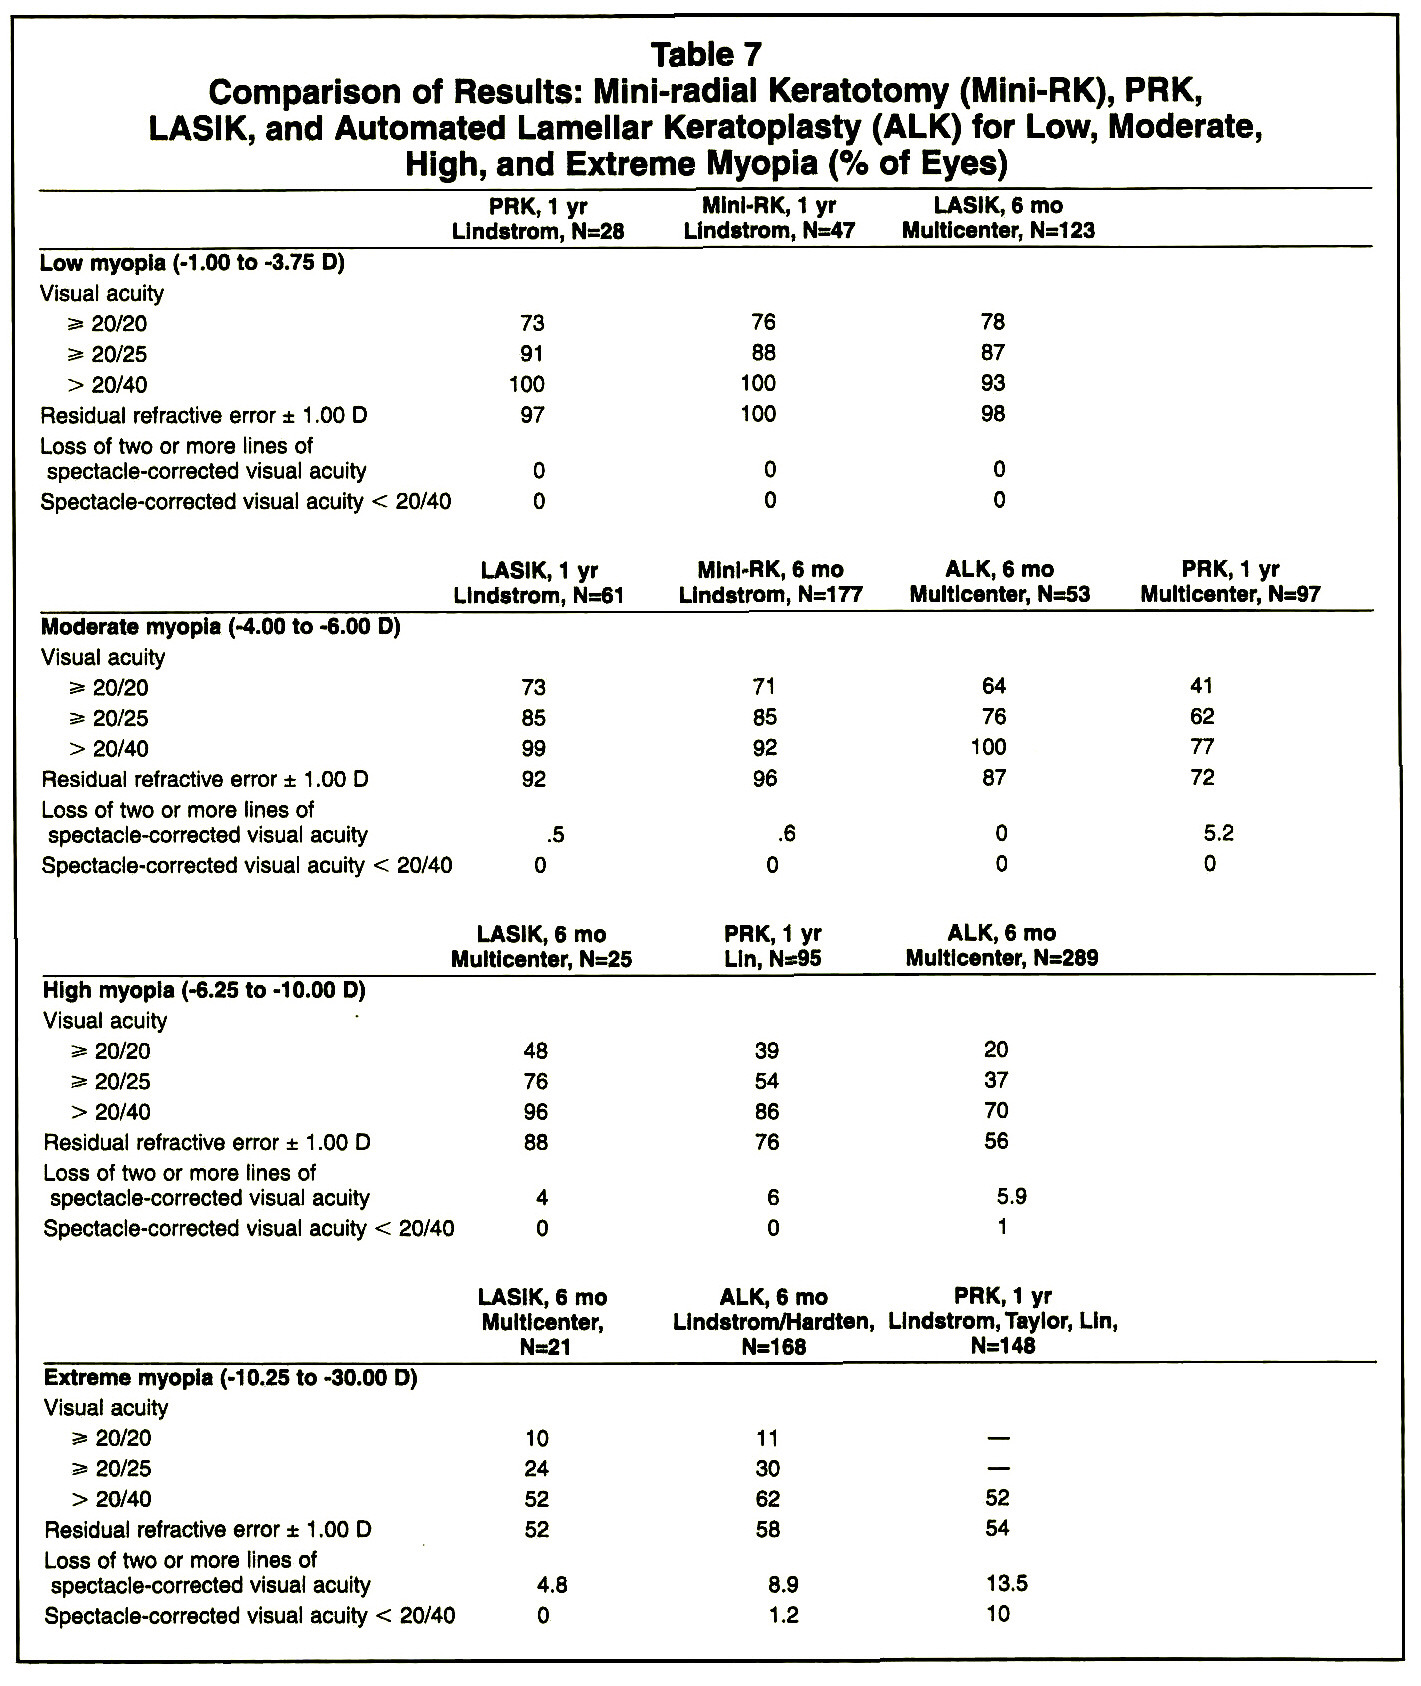 Table 7Comparison of Results: Mini-radial Keratotomy (Mini-RK), PRK, LASIK, and Automated Lamellar Keratoplasty (ALK) for Low, Moderate, High, and Extreme Myopia (% of Eyes)